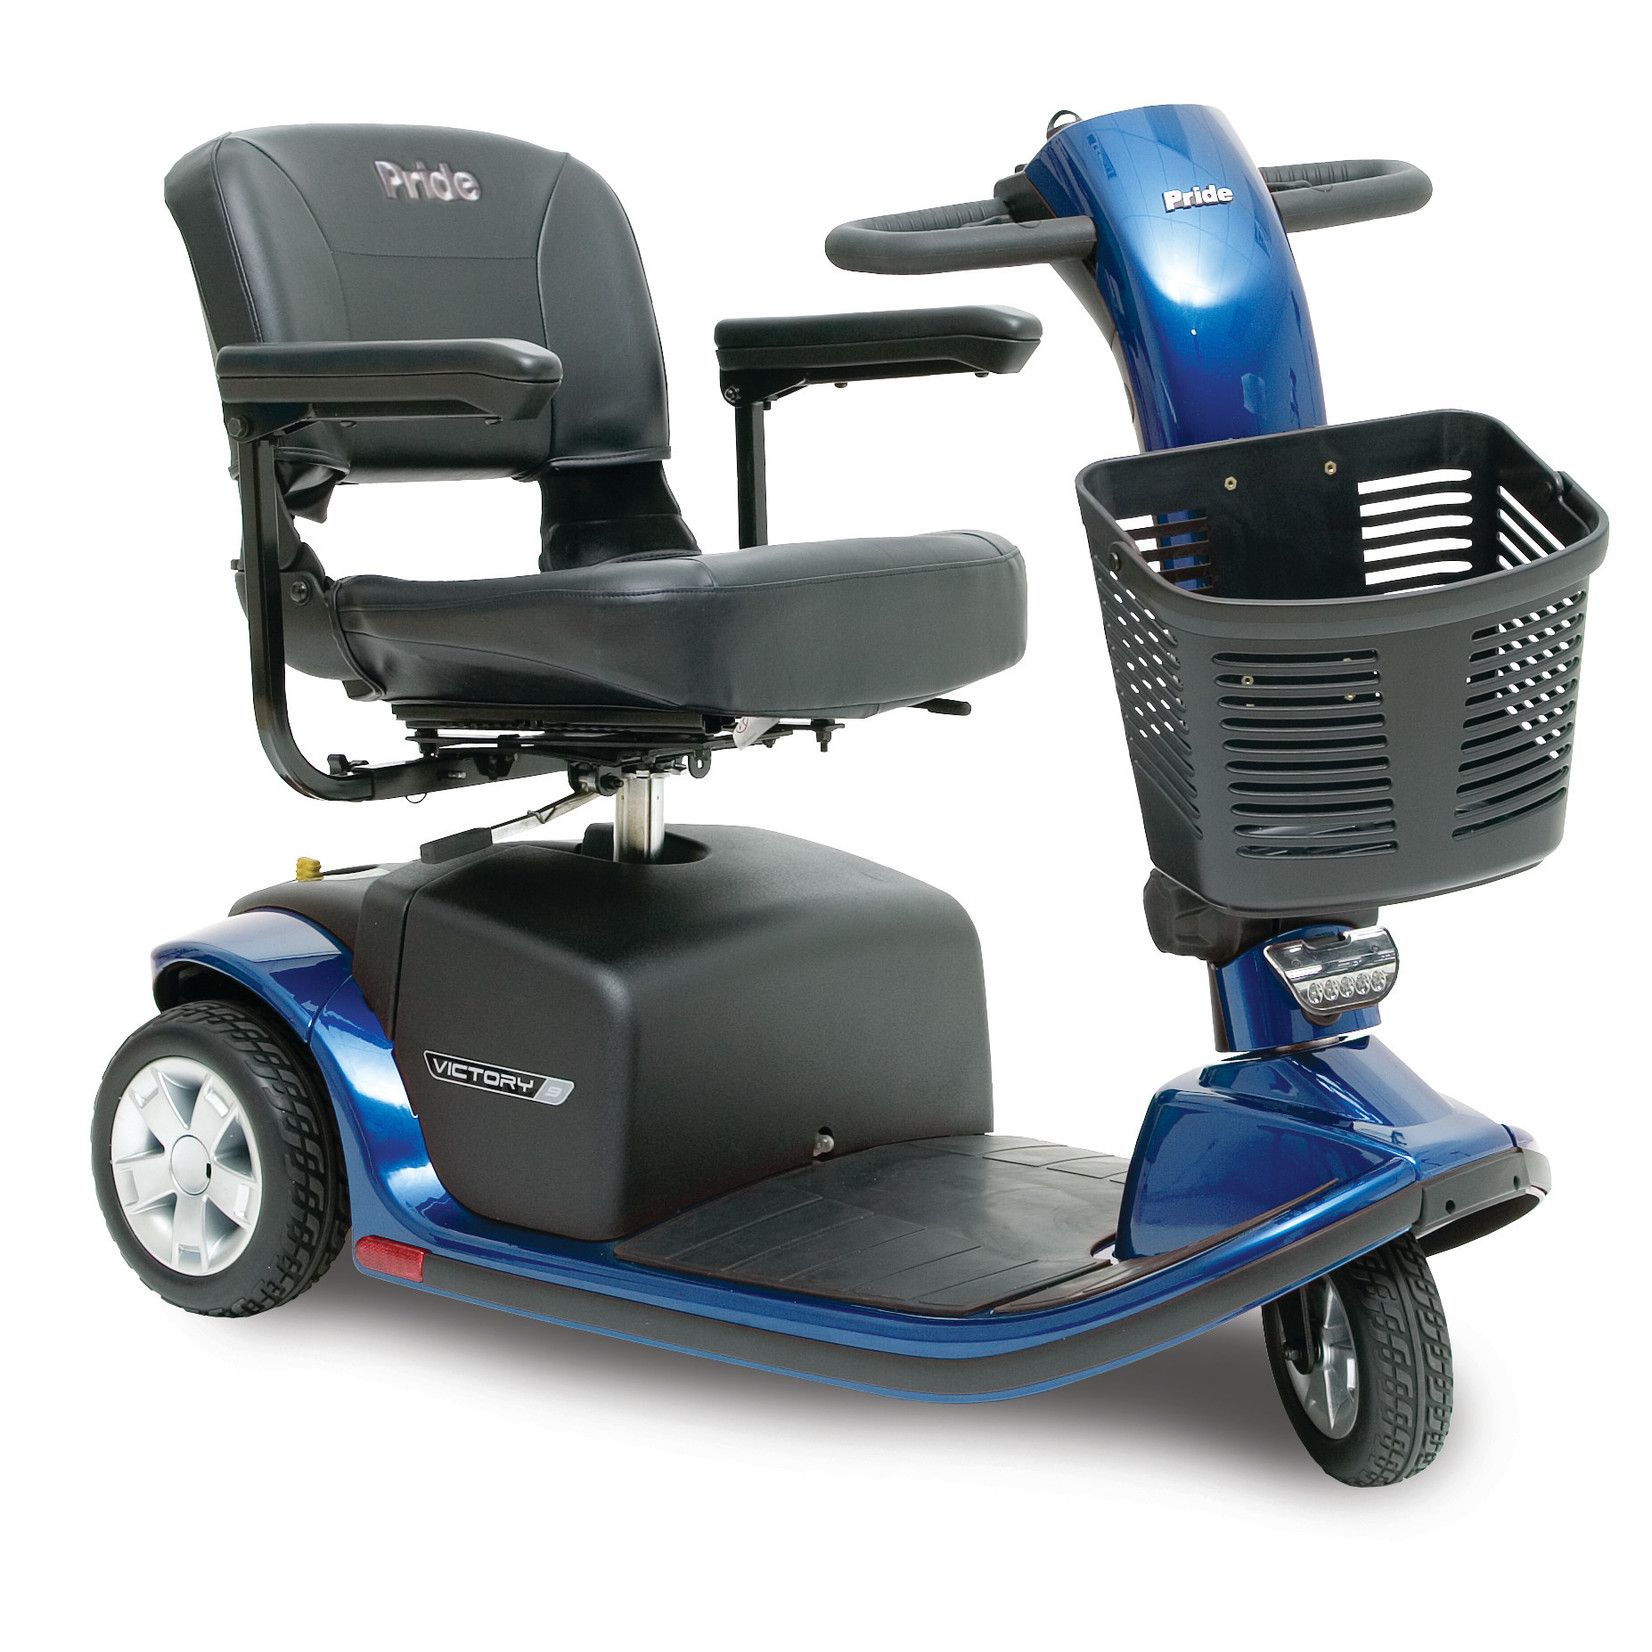 Pride Victory 9 3-Wheel Scooter